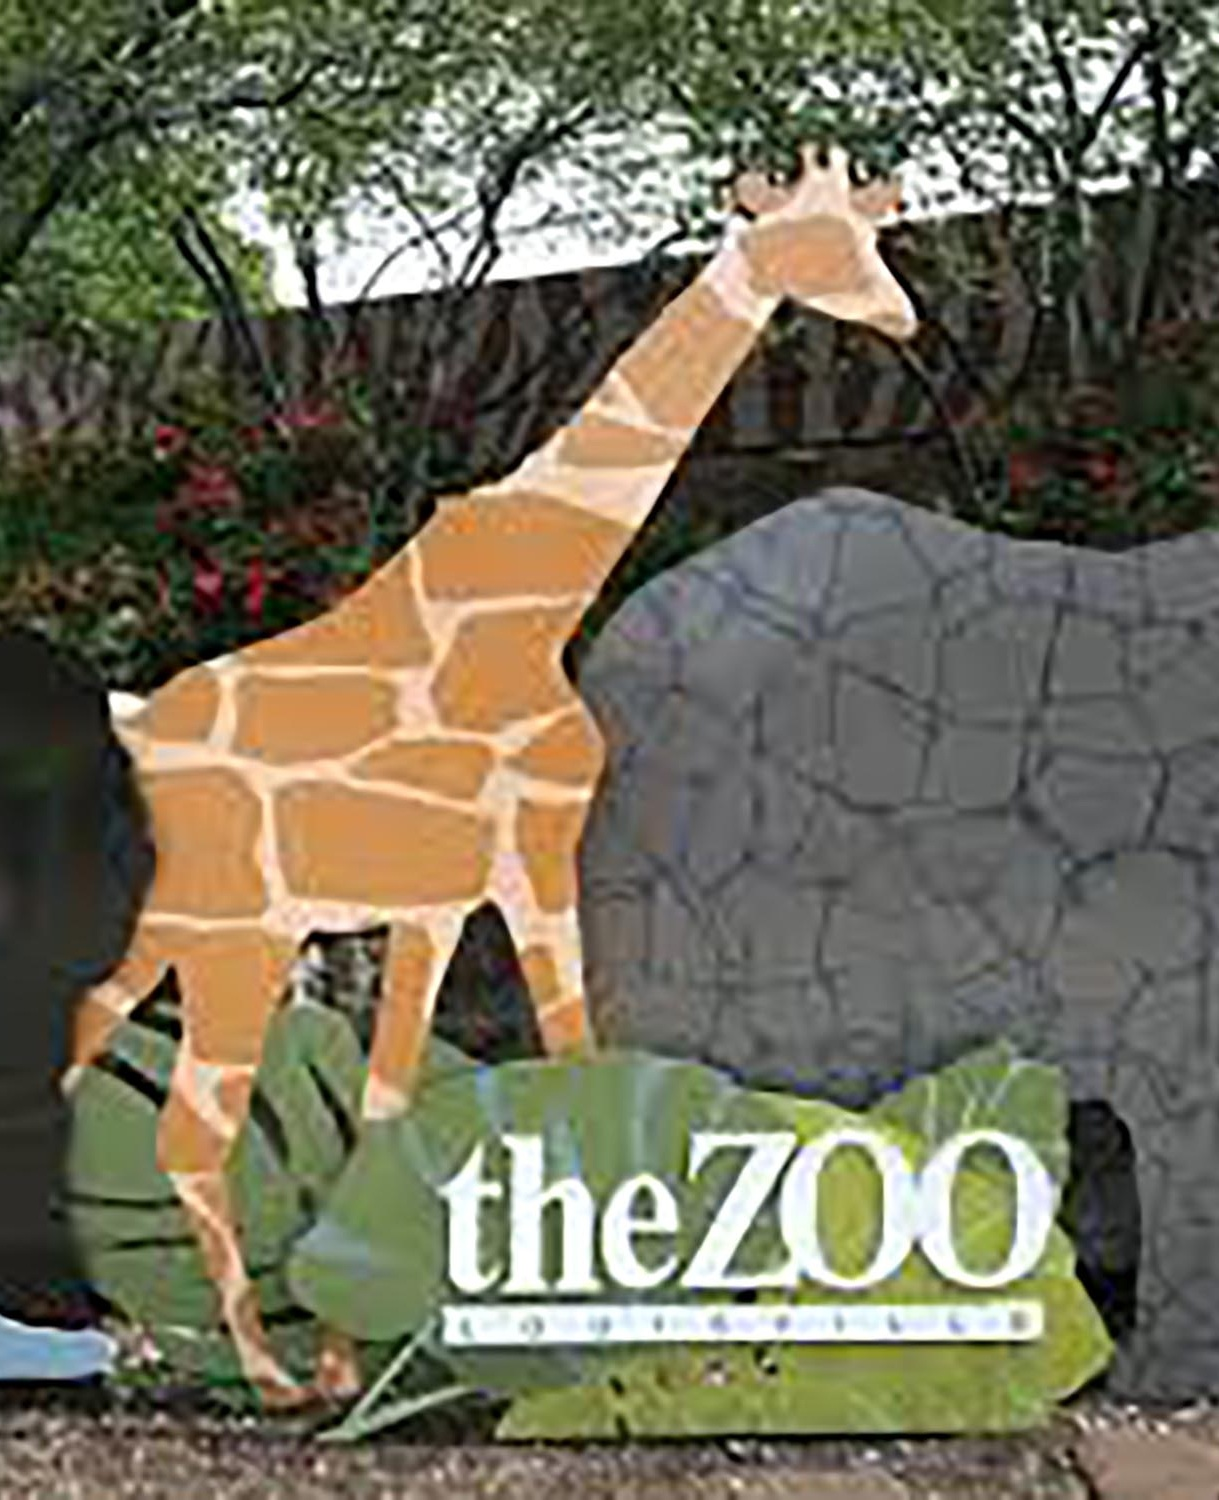 Louisville Zoo - Evaluated the Louisville Zoo's early learning programs with a focus on social emotional learning outcomes